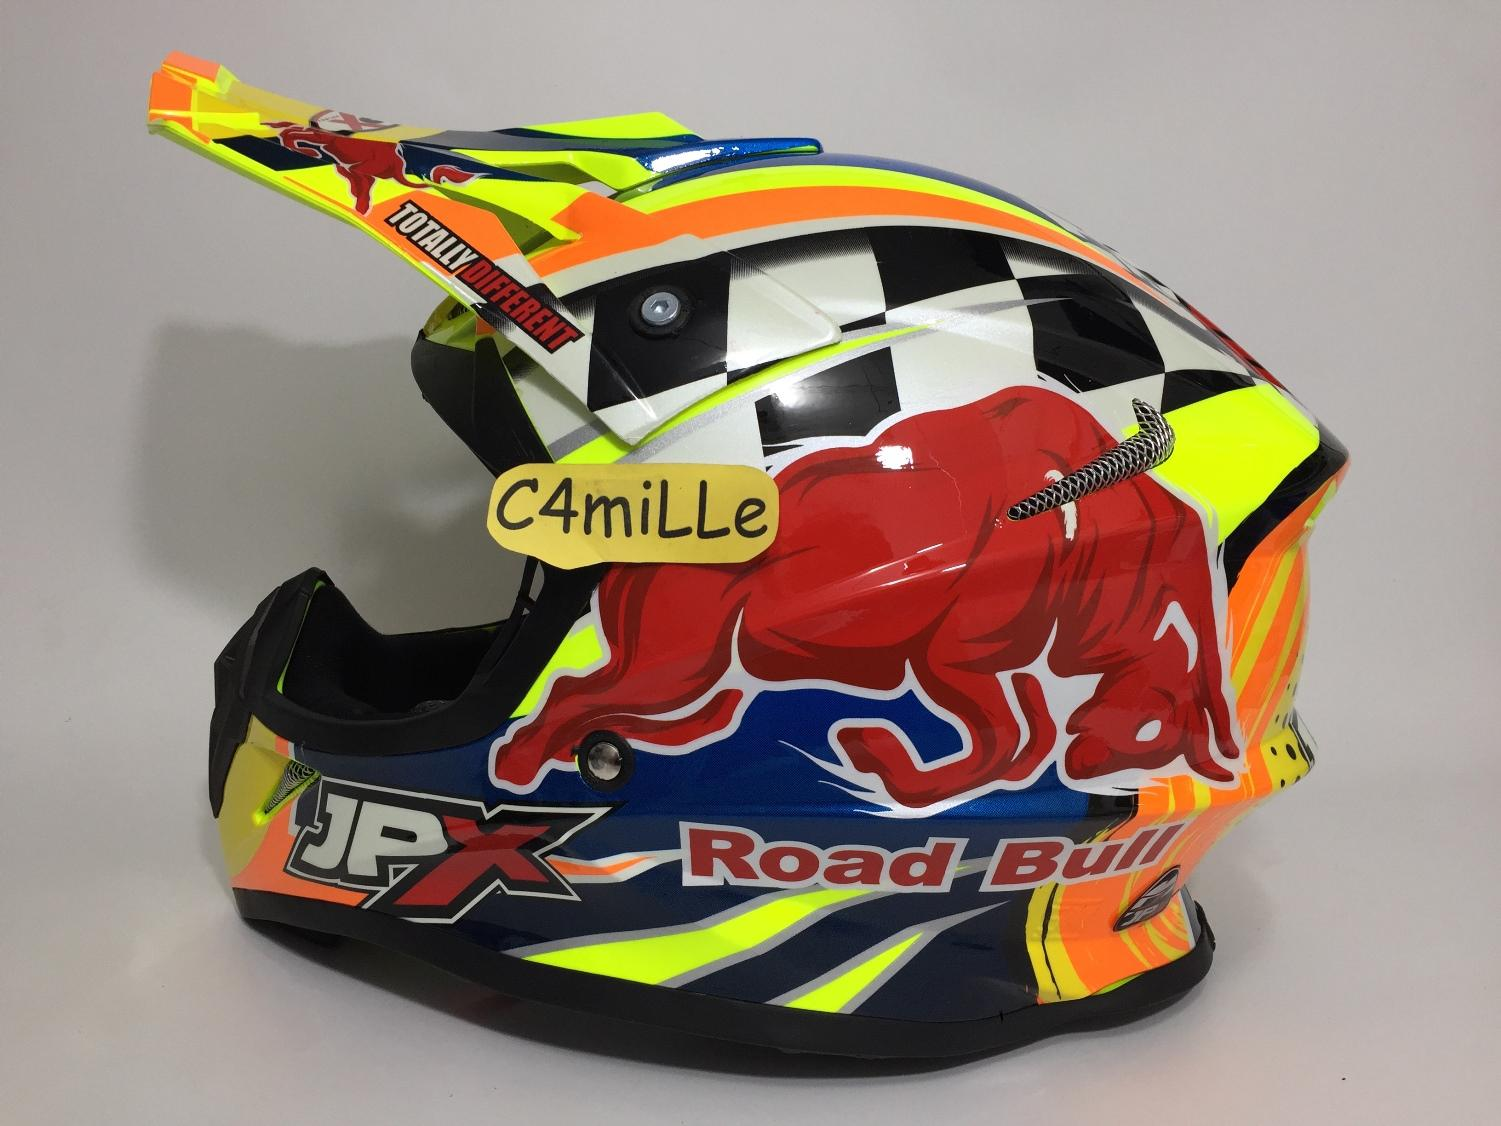 HELM JPX CROSS X8 ROAD BULL FLUORESCENT YELLOW GLOSS ORANGE TRAIL SUPER CROSS